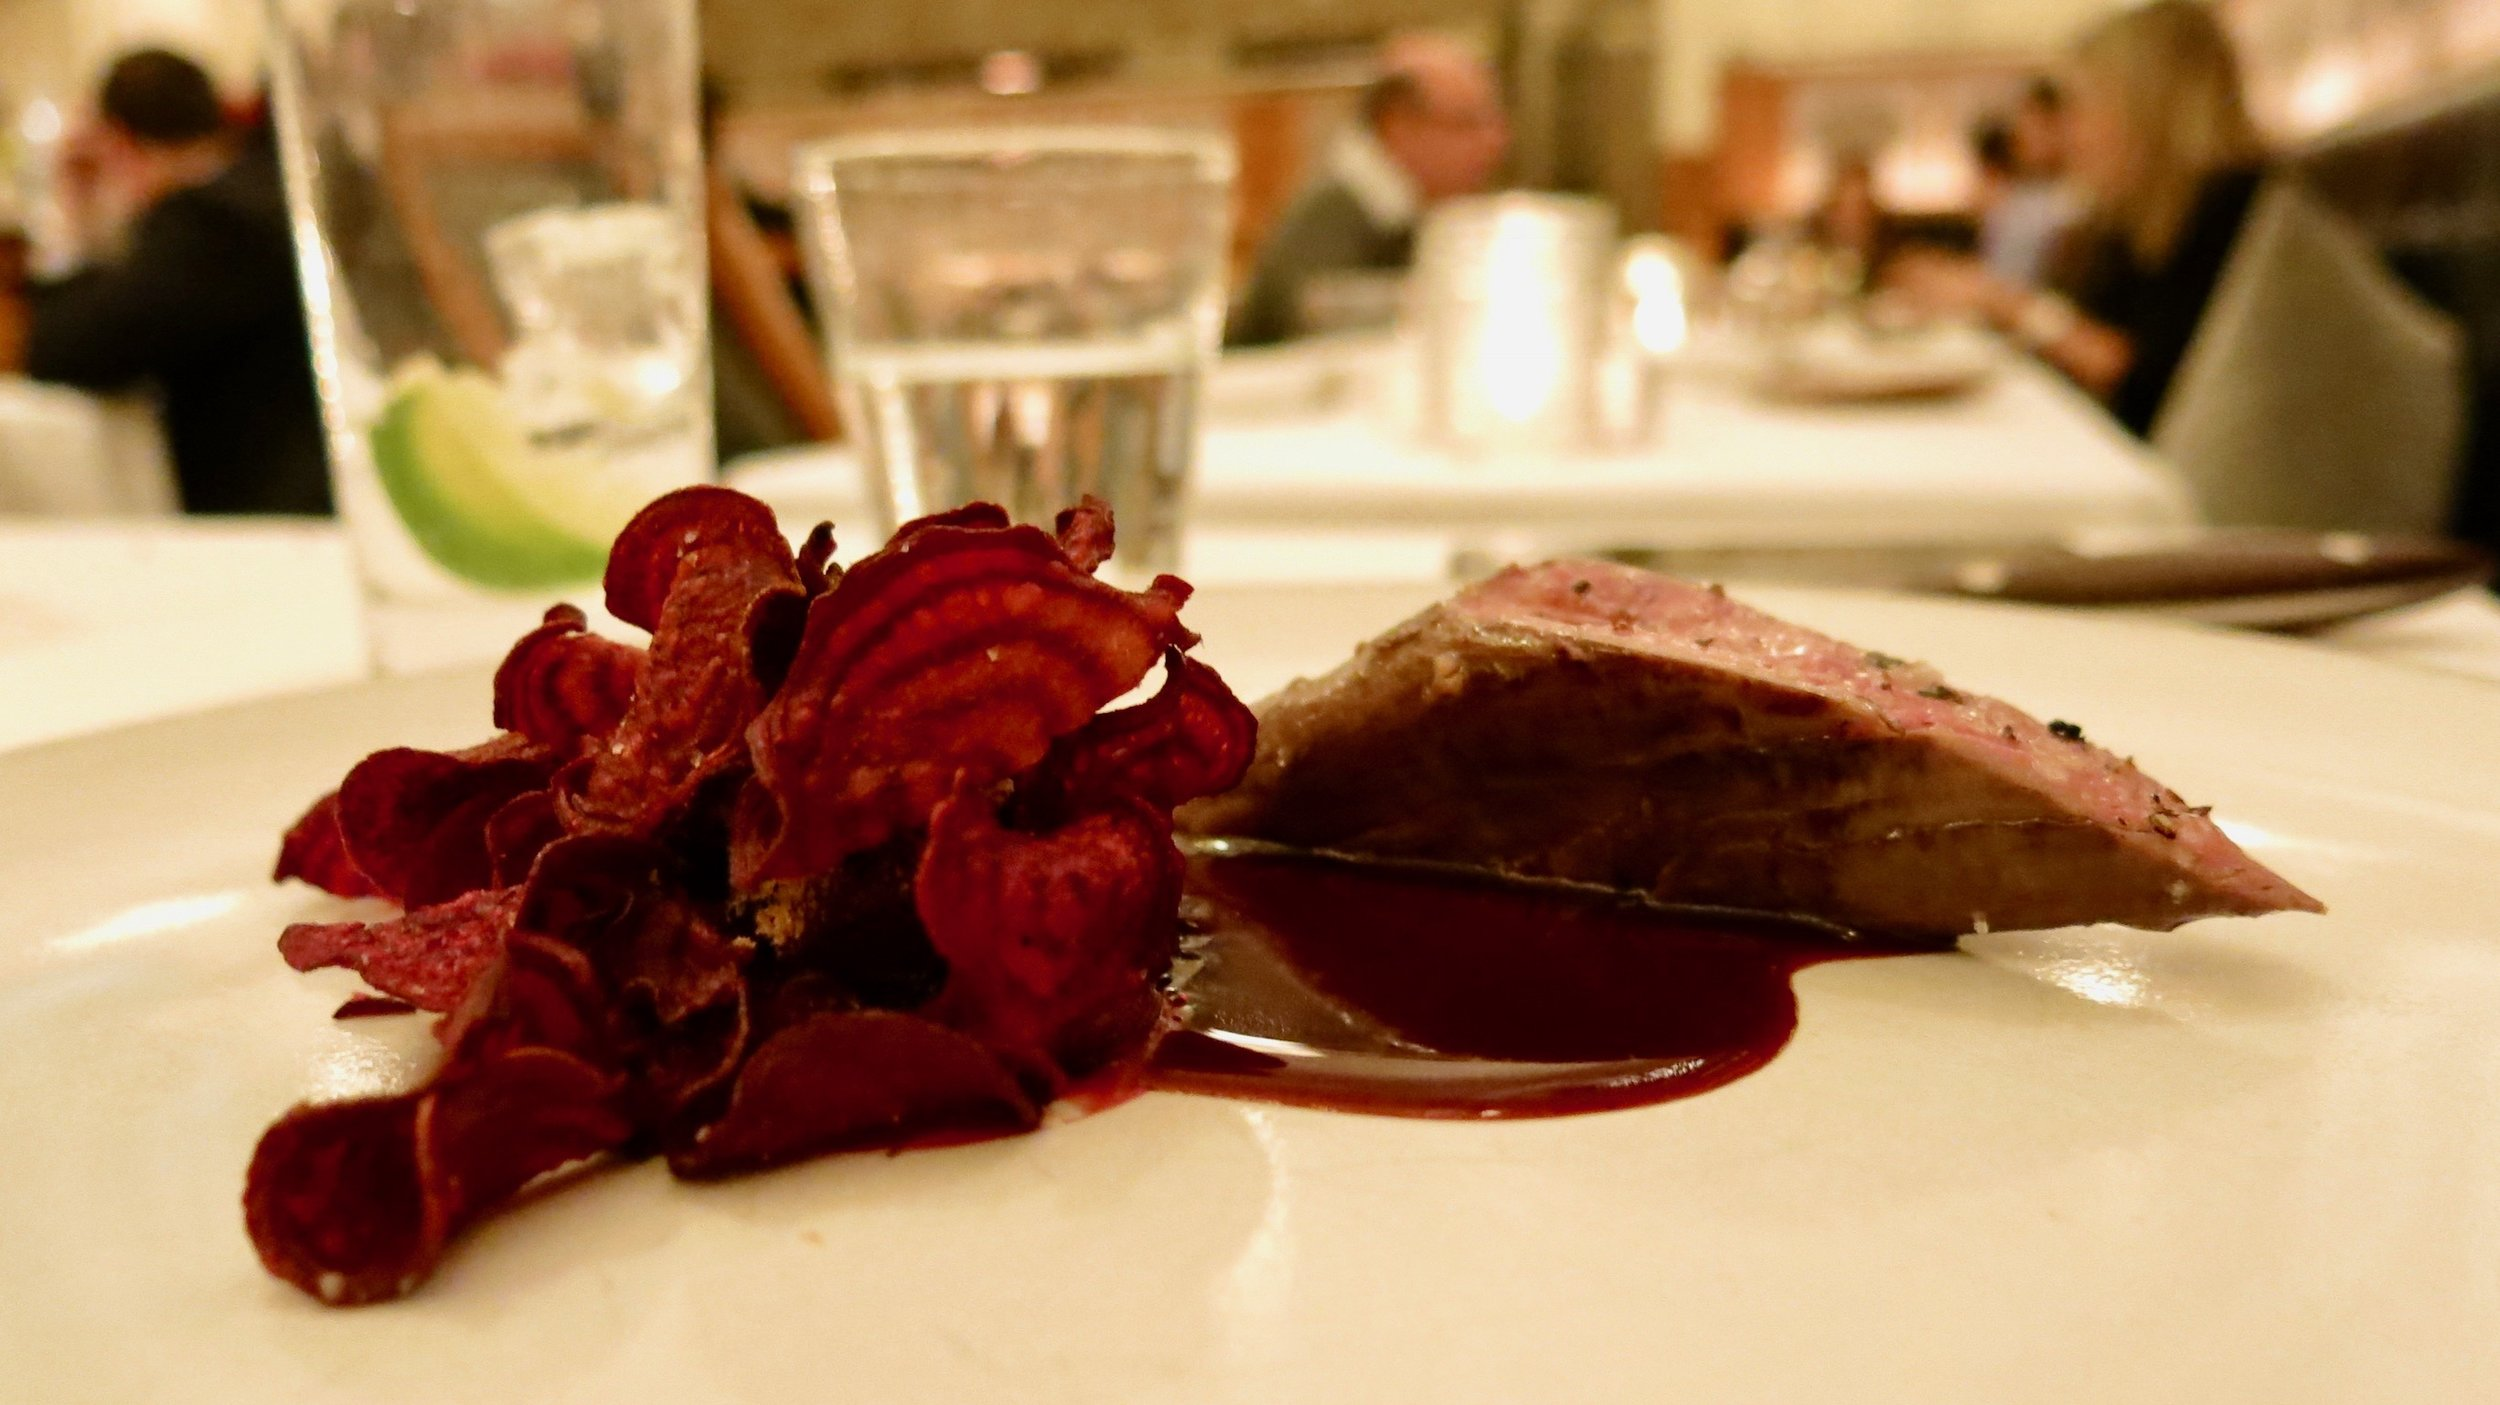 12th Course - Venison: Roasted with Beets and Onions